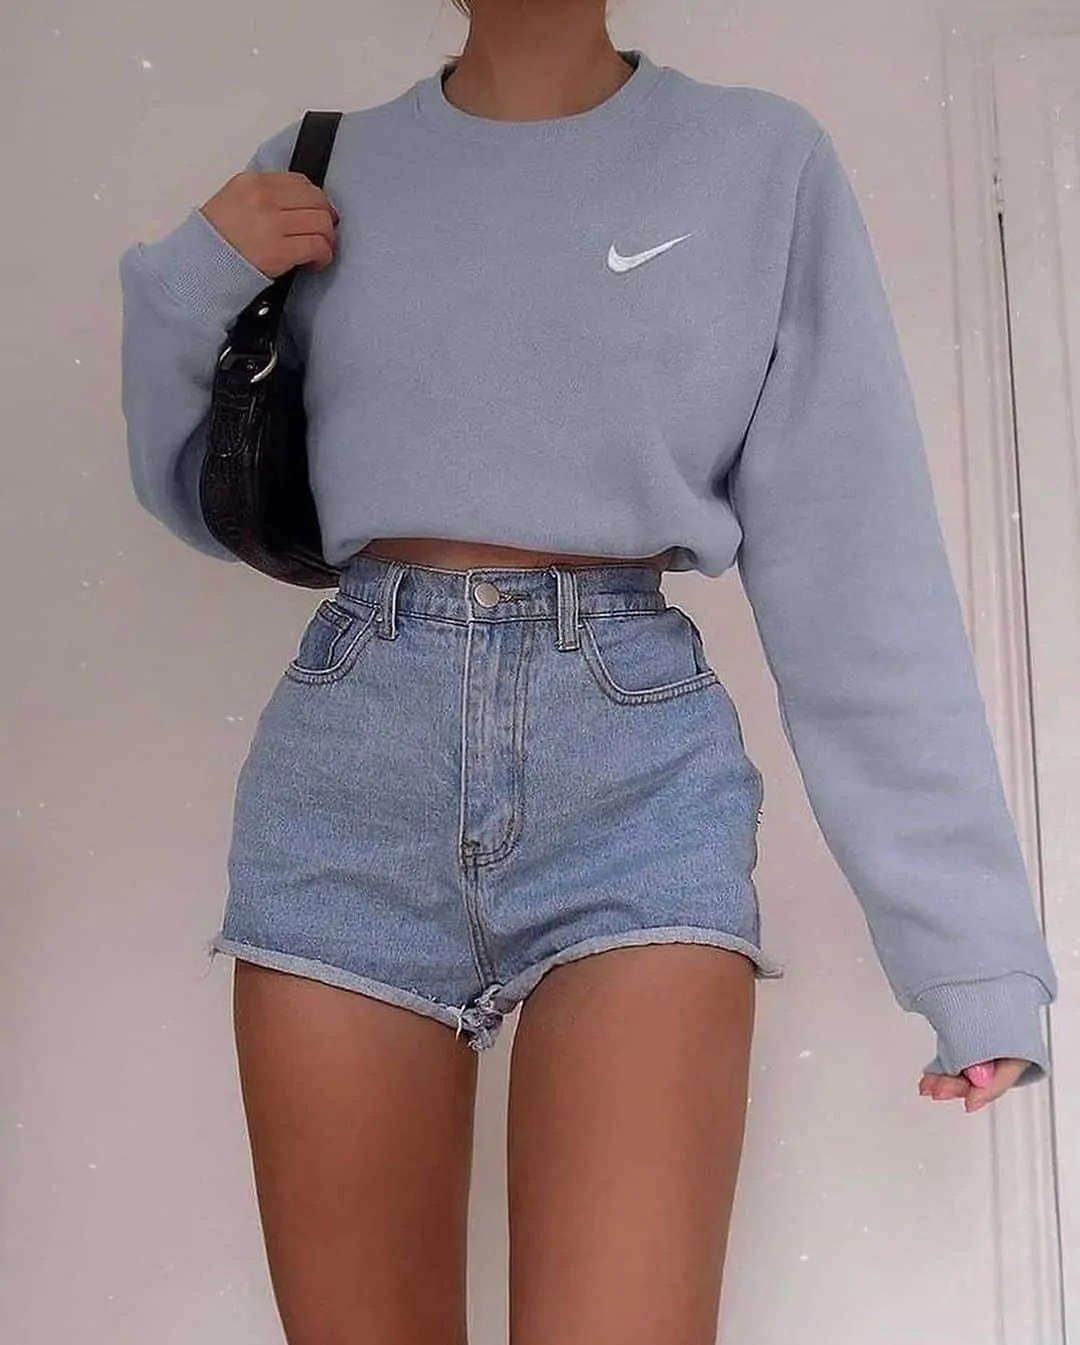 100+ fashion inspo outfits that you have to see no matter what your style is 111